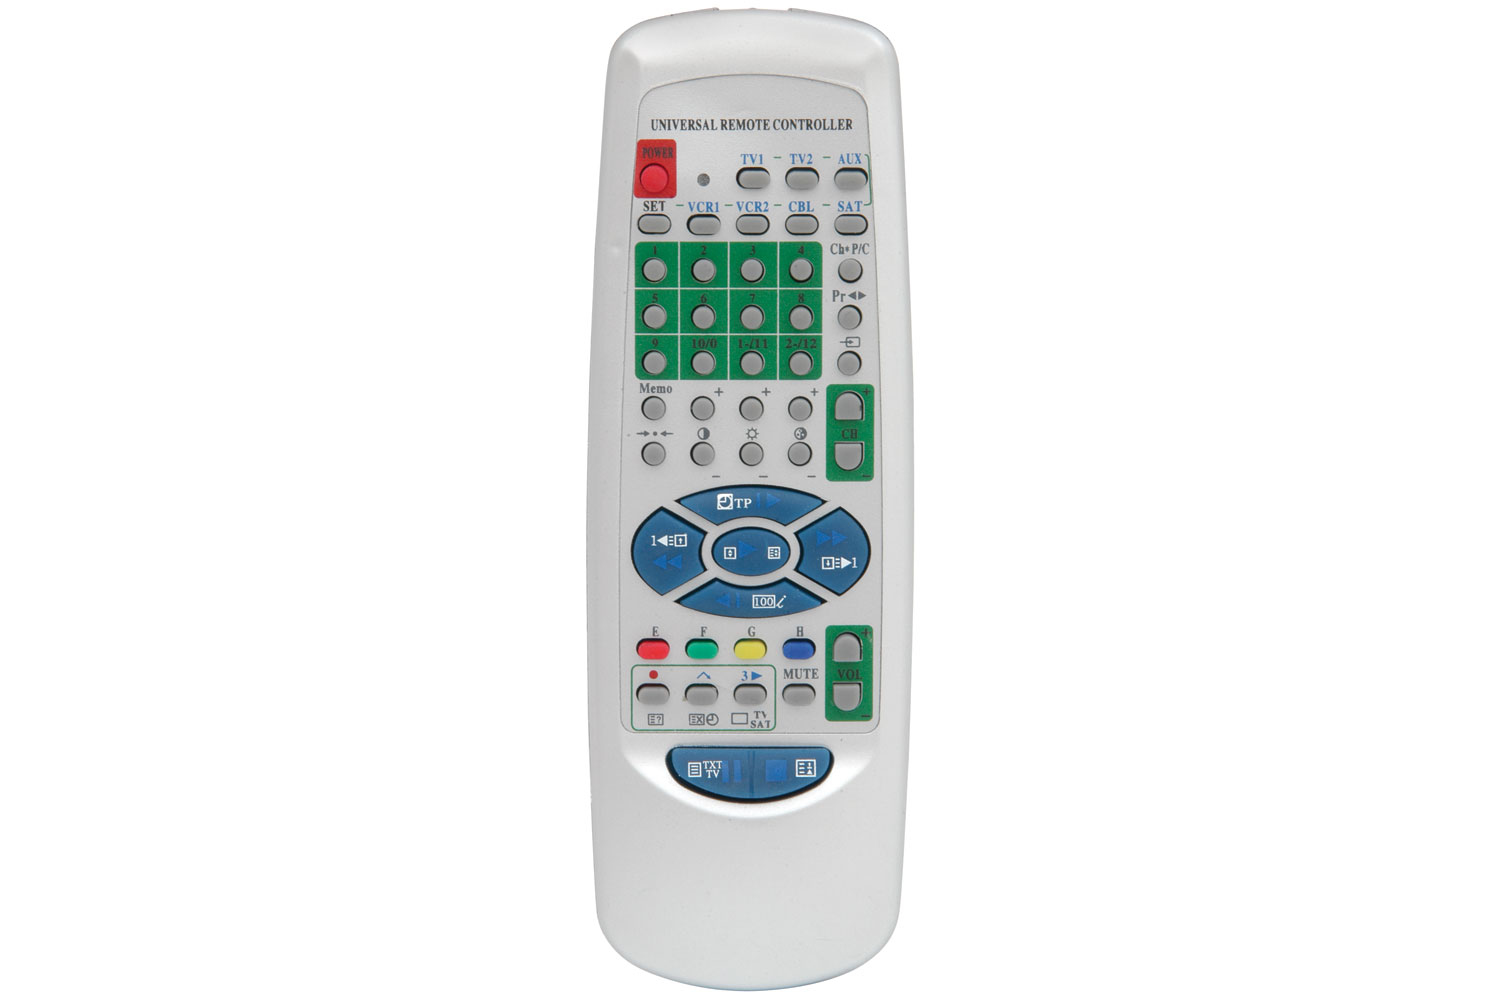 AV Link 149.503UK IR Wireless Press buttons Grey remote control